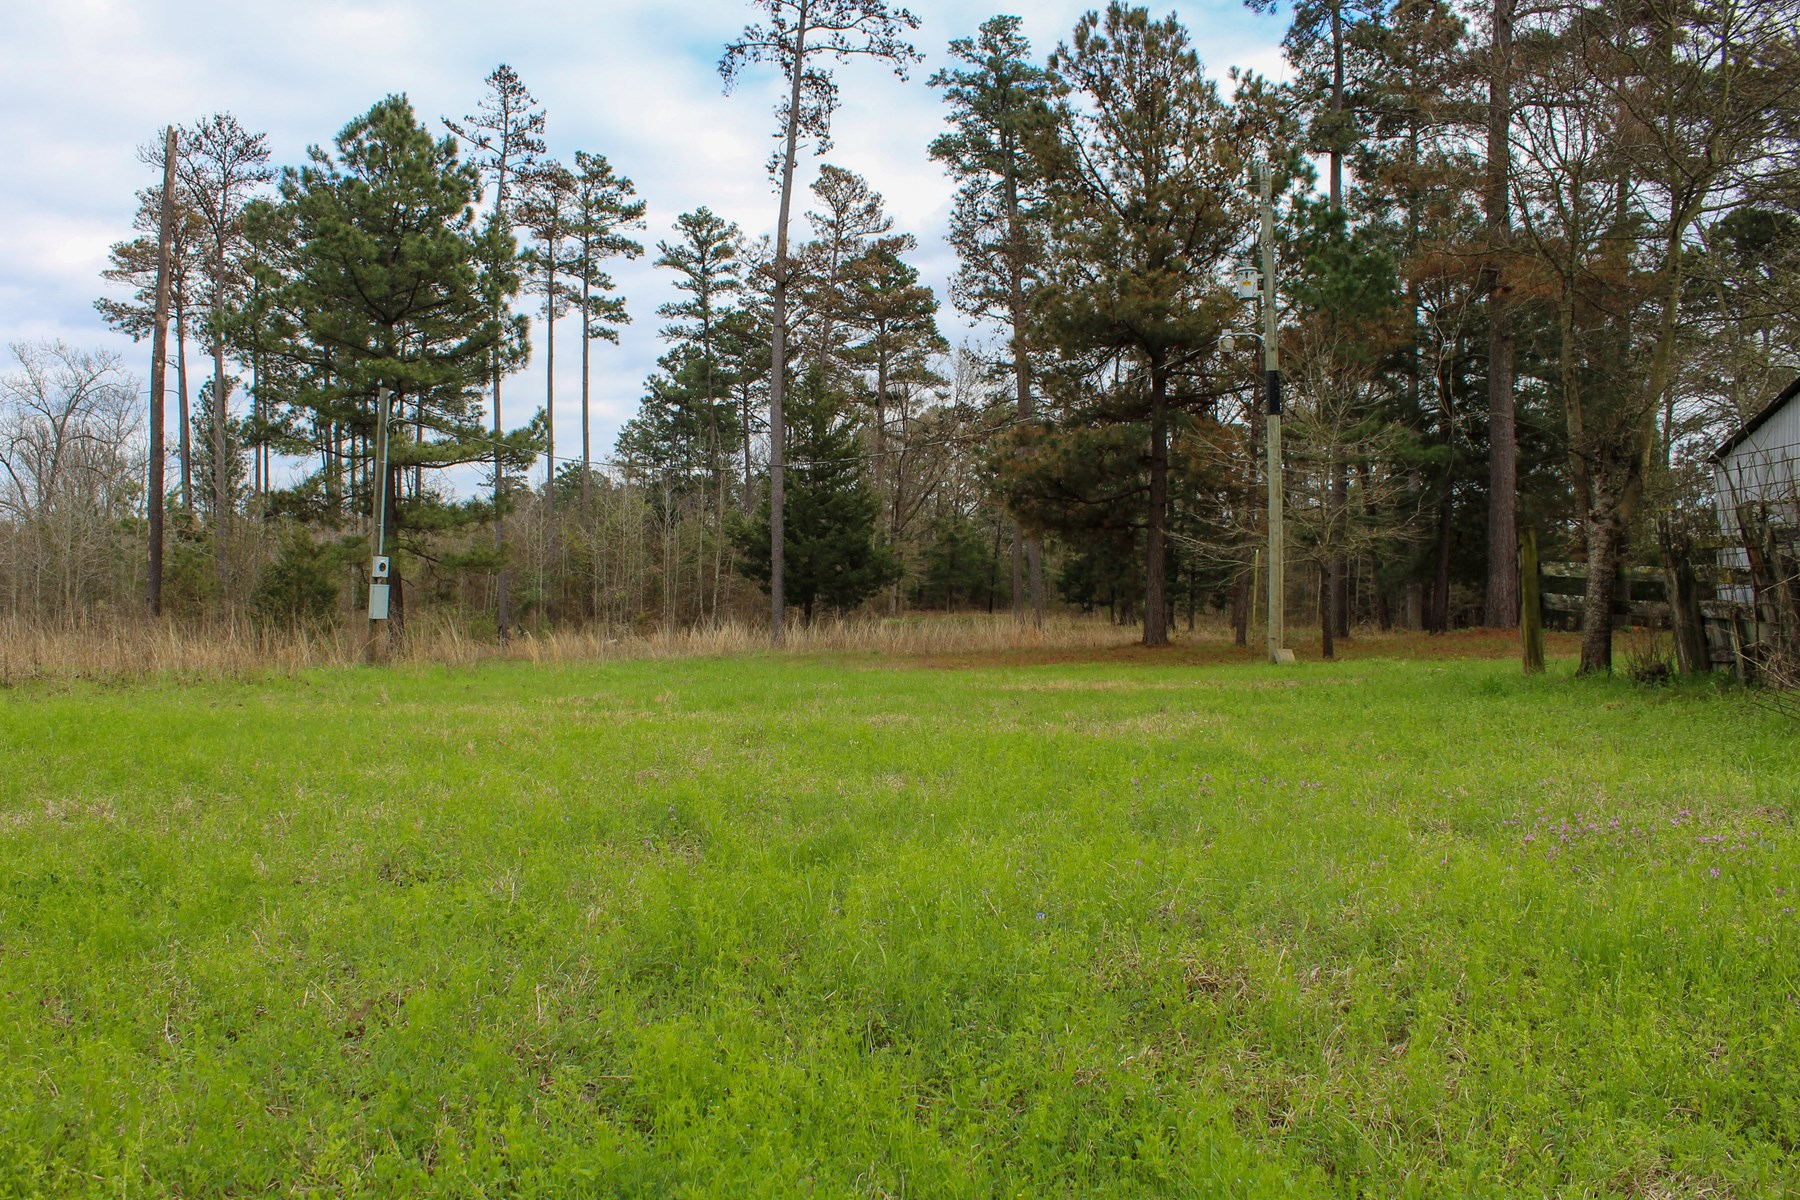 ALMOST 5 ACRES WOOD COUNTY - WINNSBORO TEXAS FOR SALE